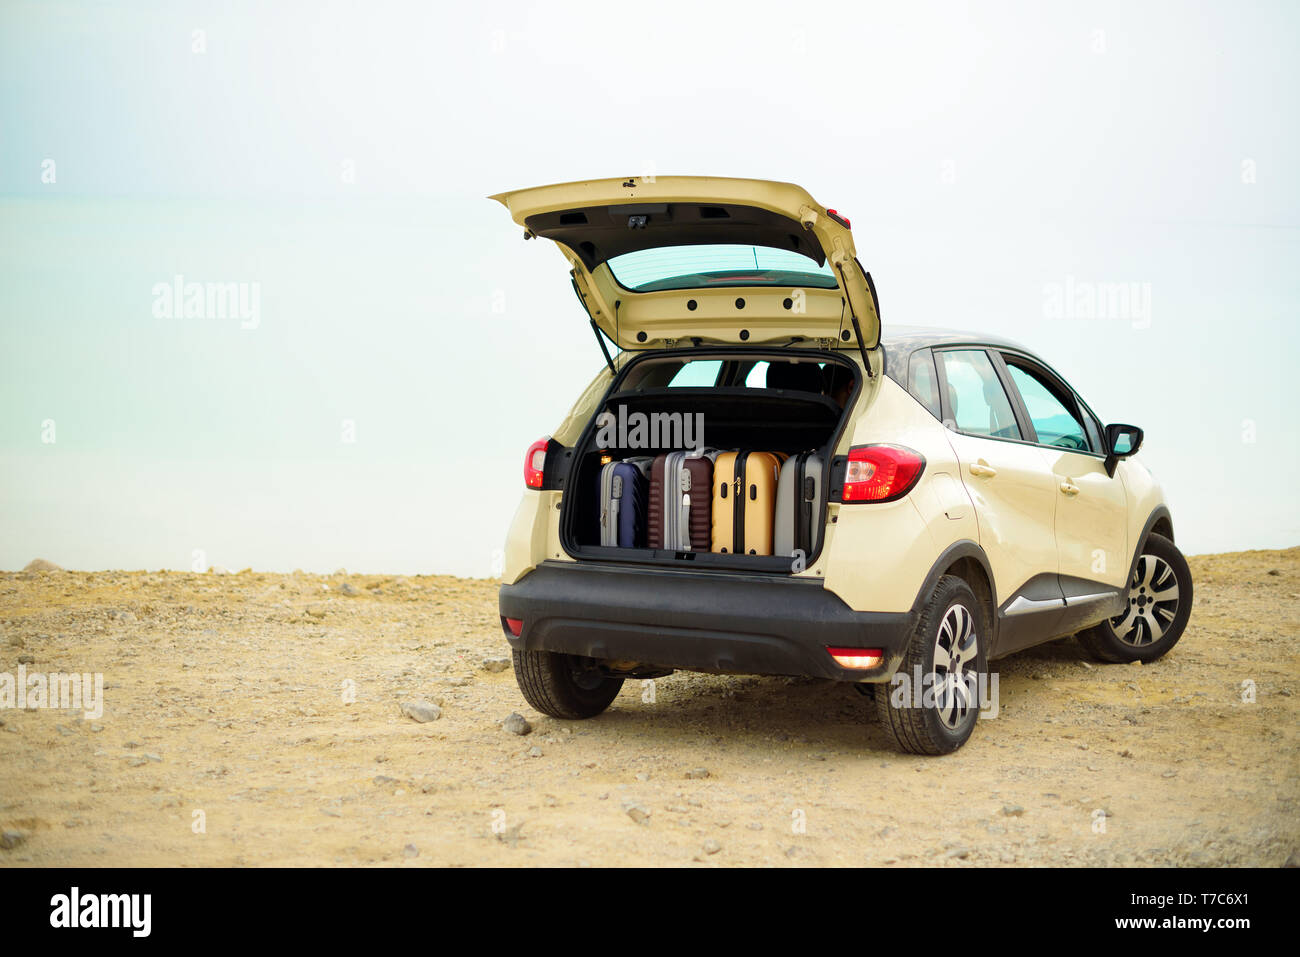 Suitcases and bags in car trunk on the beach. Summer holidays, travel, trip, adventure concept - Stock Image